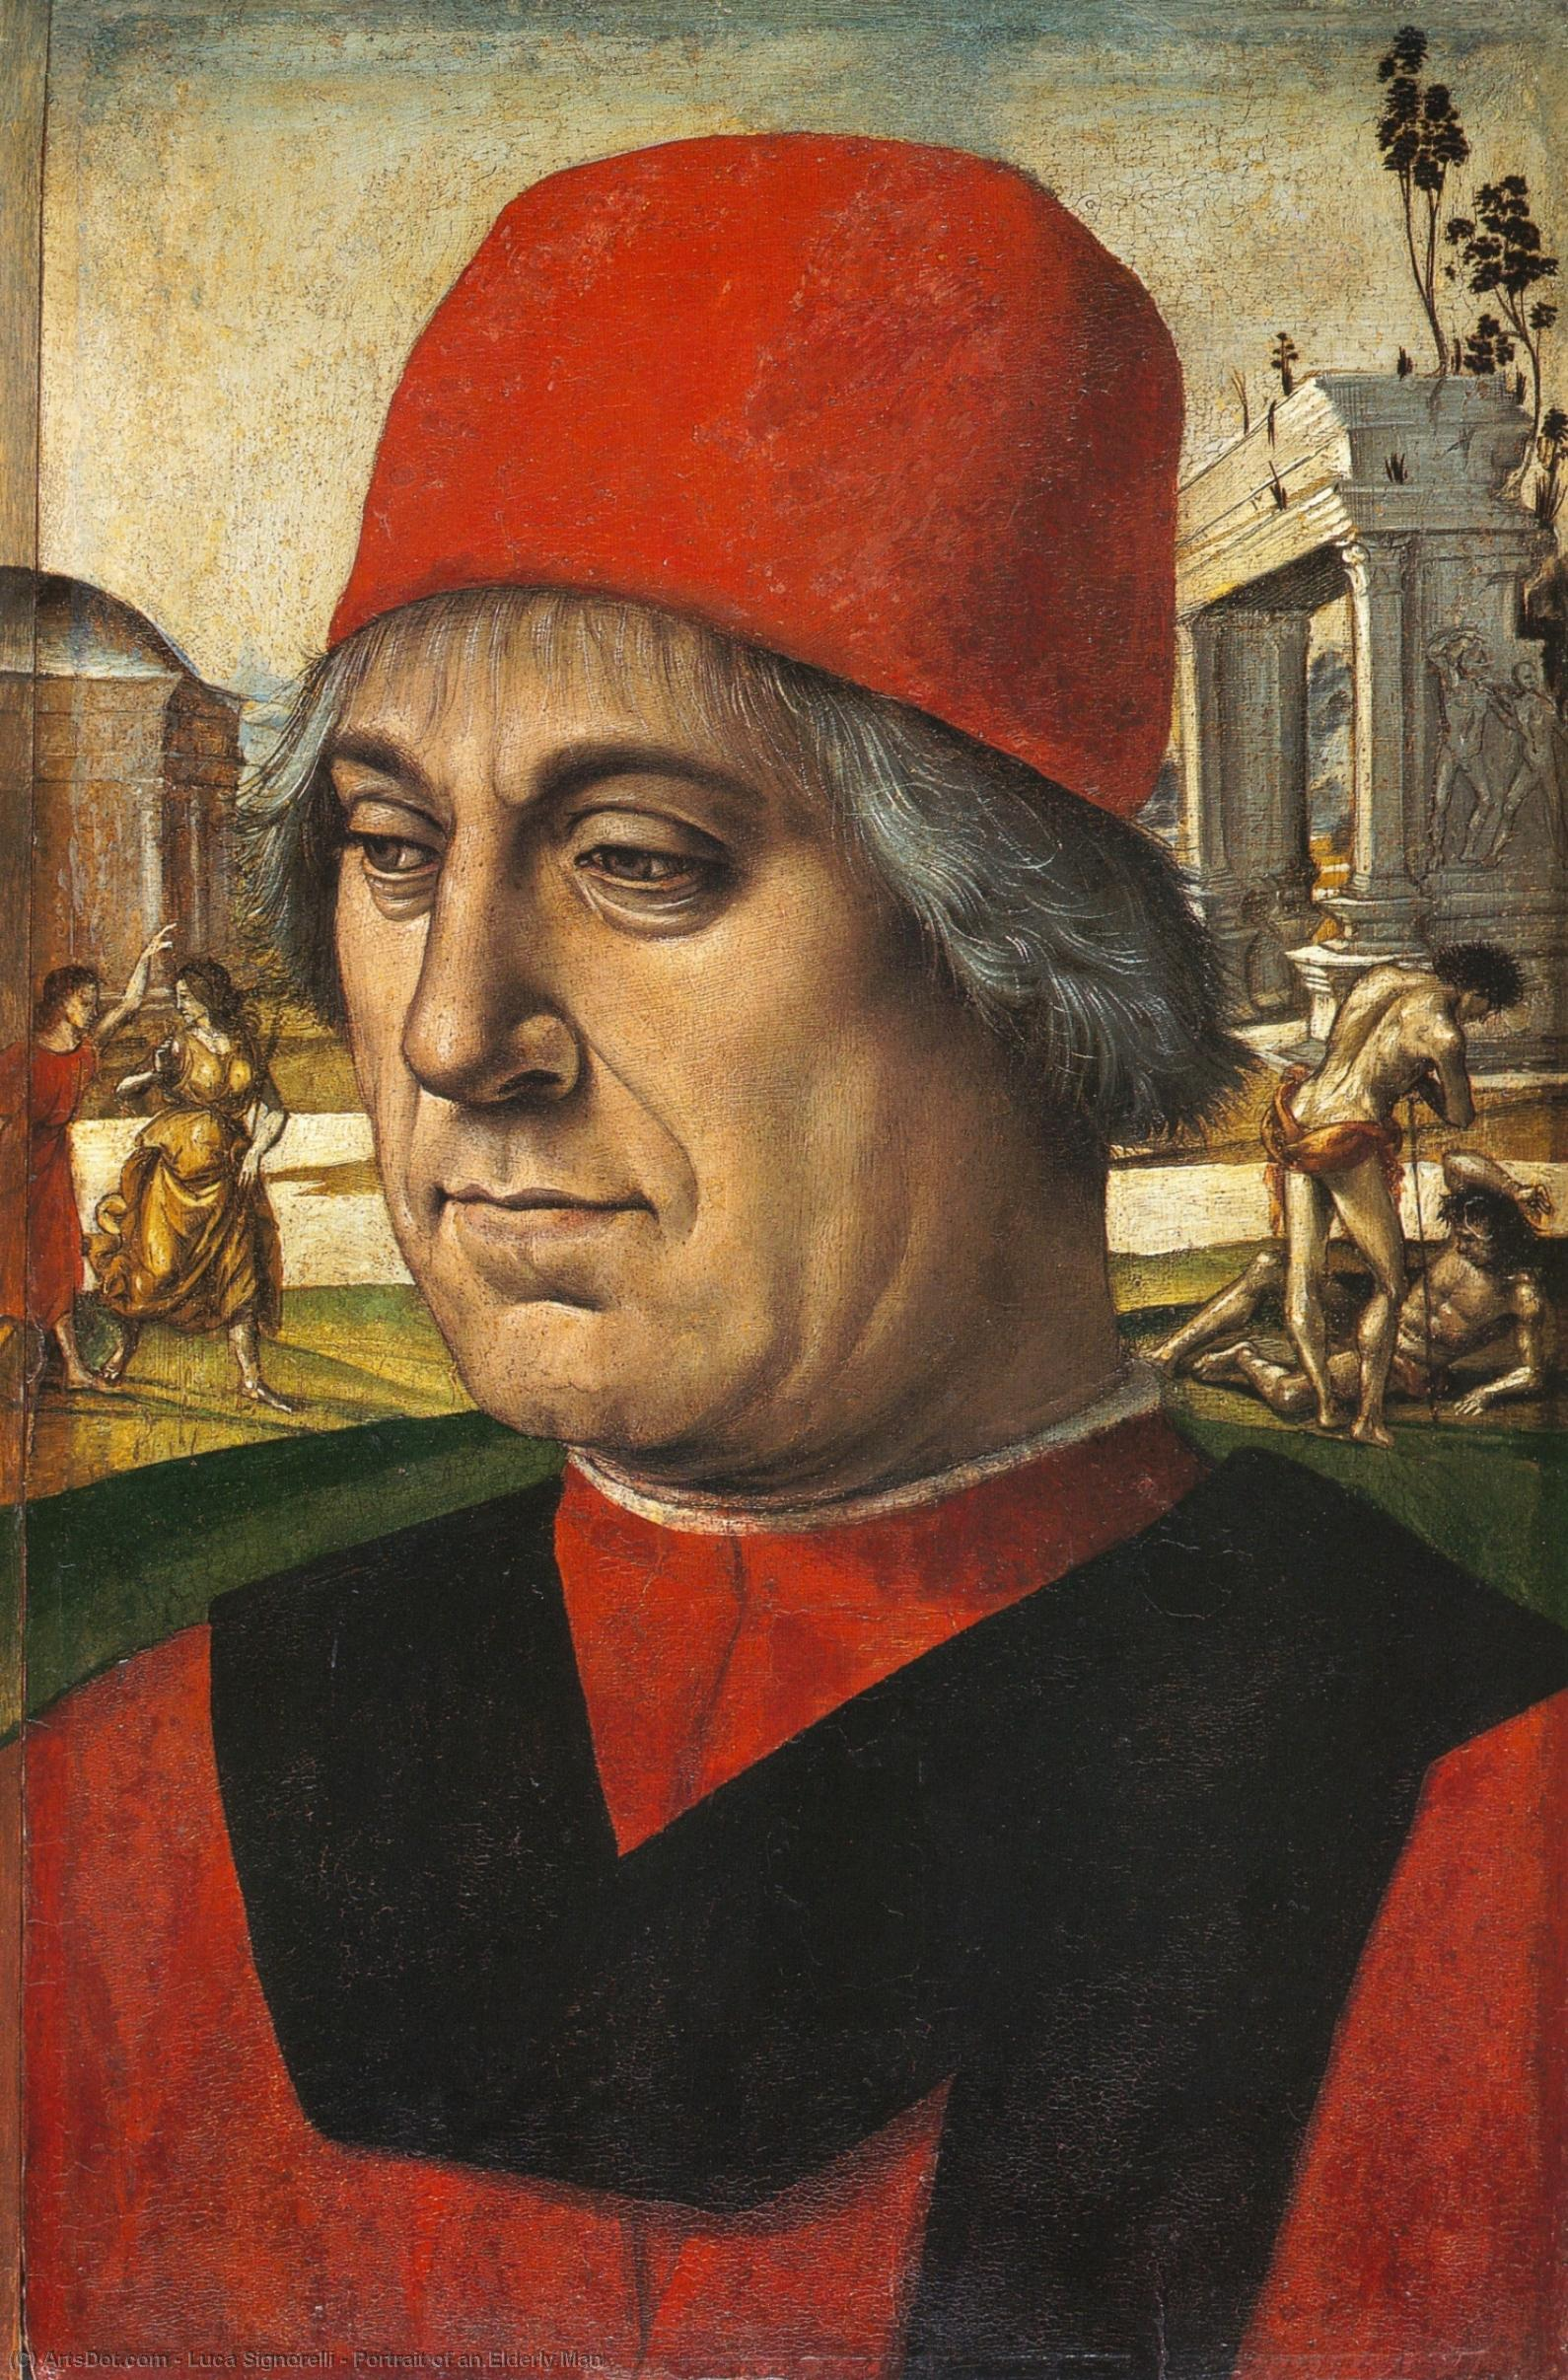 Wikioo.org - The Encyclopedia of Fine Arts - Painting, Artwork by Luca Signorelli - Portrait of an Elderly Man